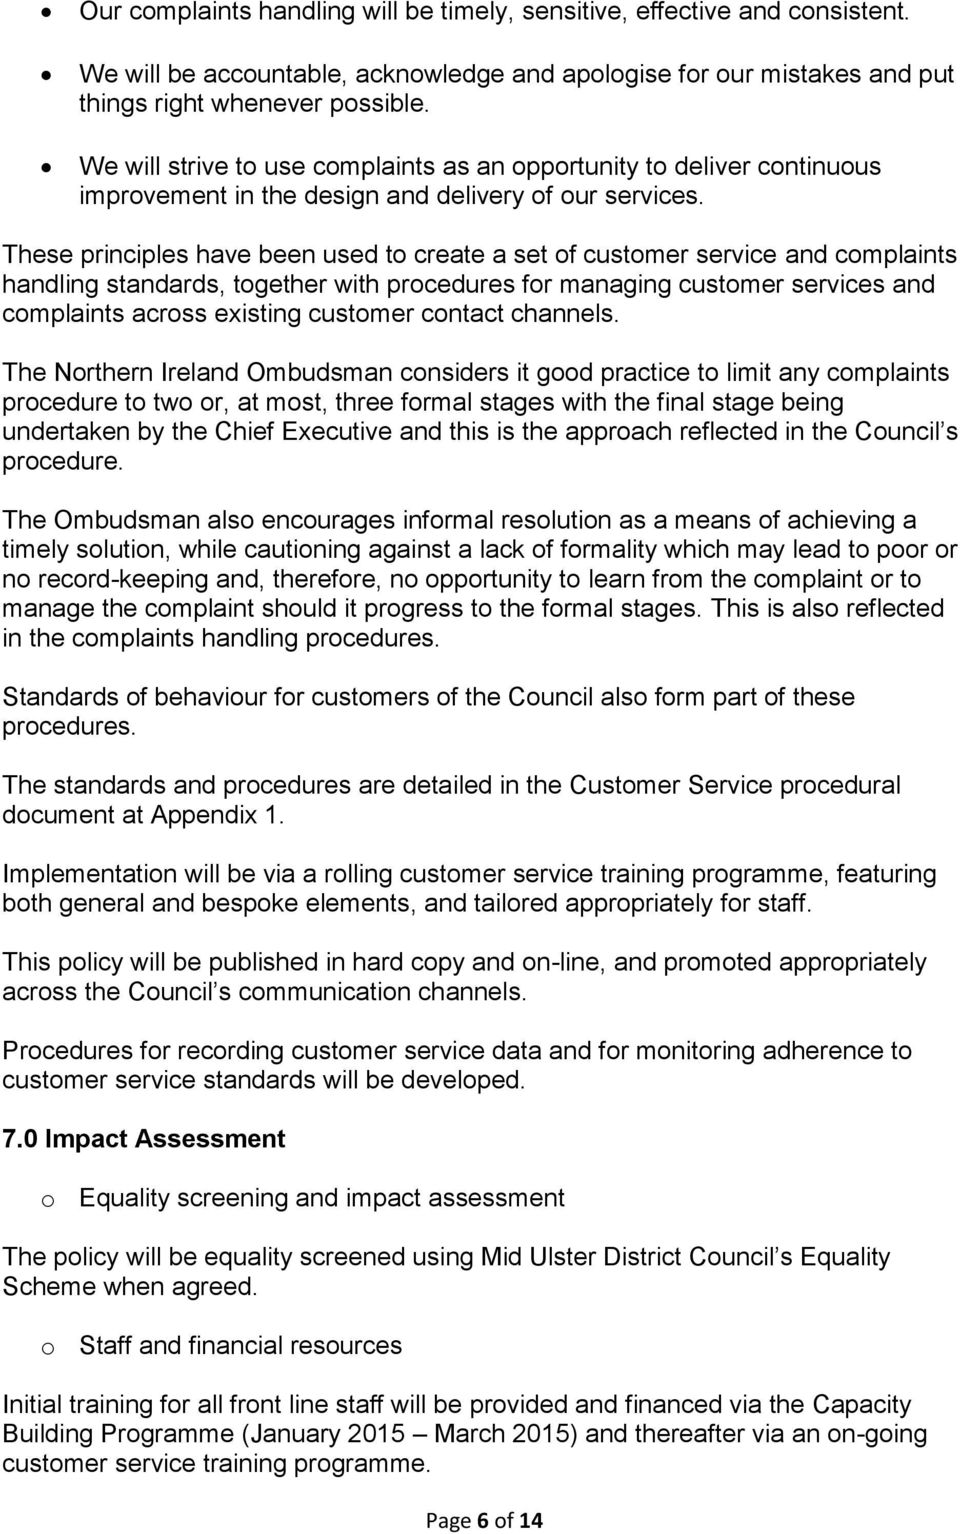 These principles have been used to create a set of customer service and complaints handling standards, together with procedures for managing customer services and complaints across existing customer